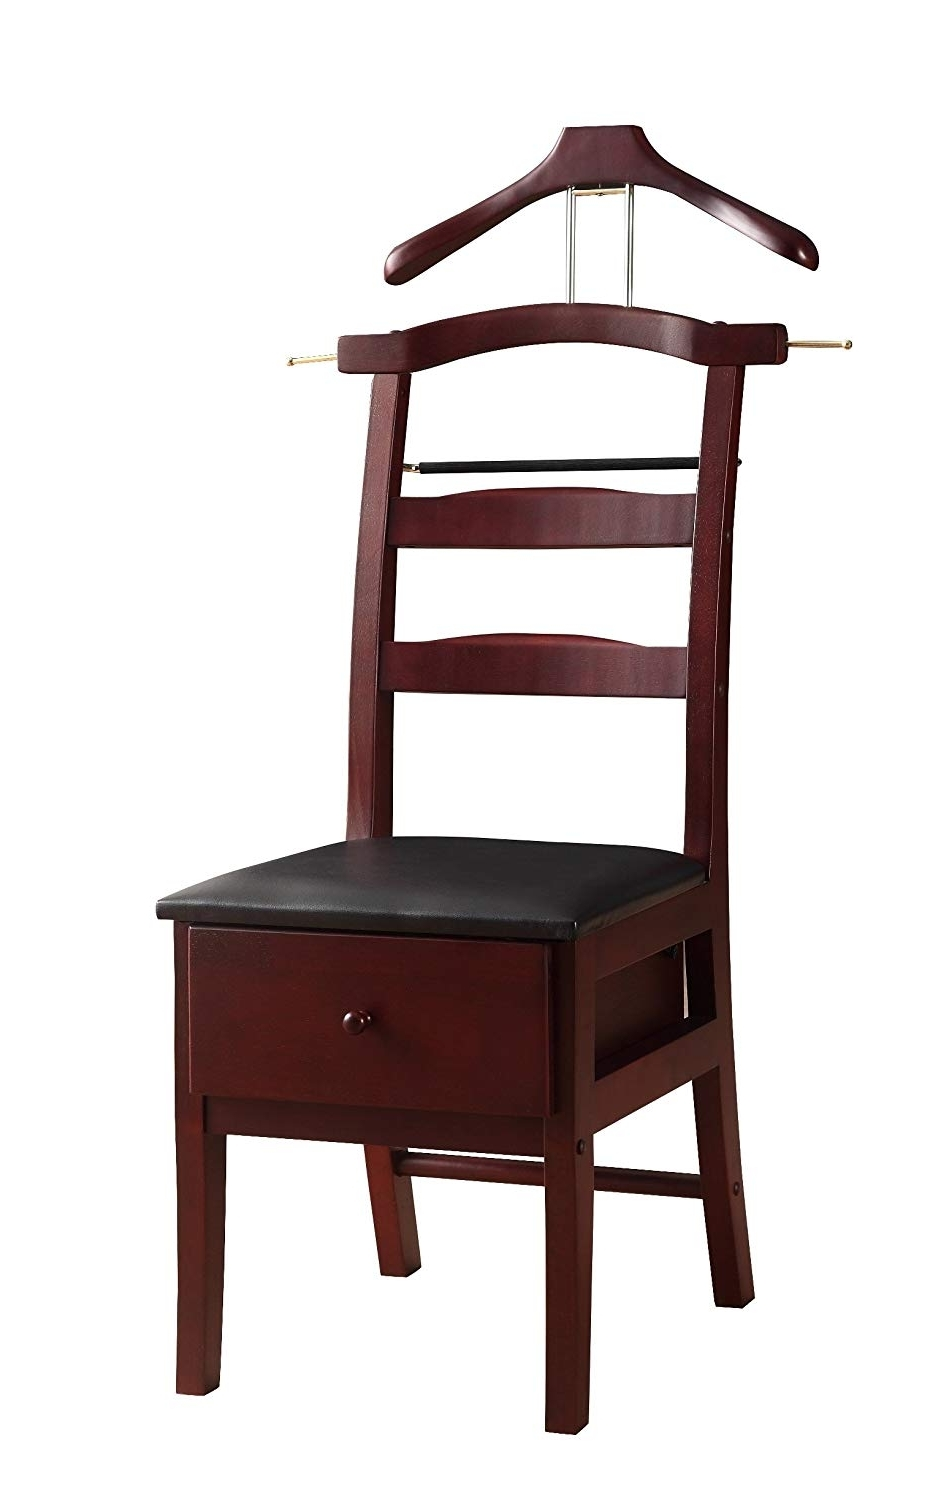 Amazon: Proman Products Vl16142 Chair Valet: Kitchen & Dining Within Popular Cole Ii Orange Side Chairs (View 3 of 20)